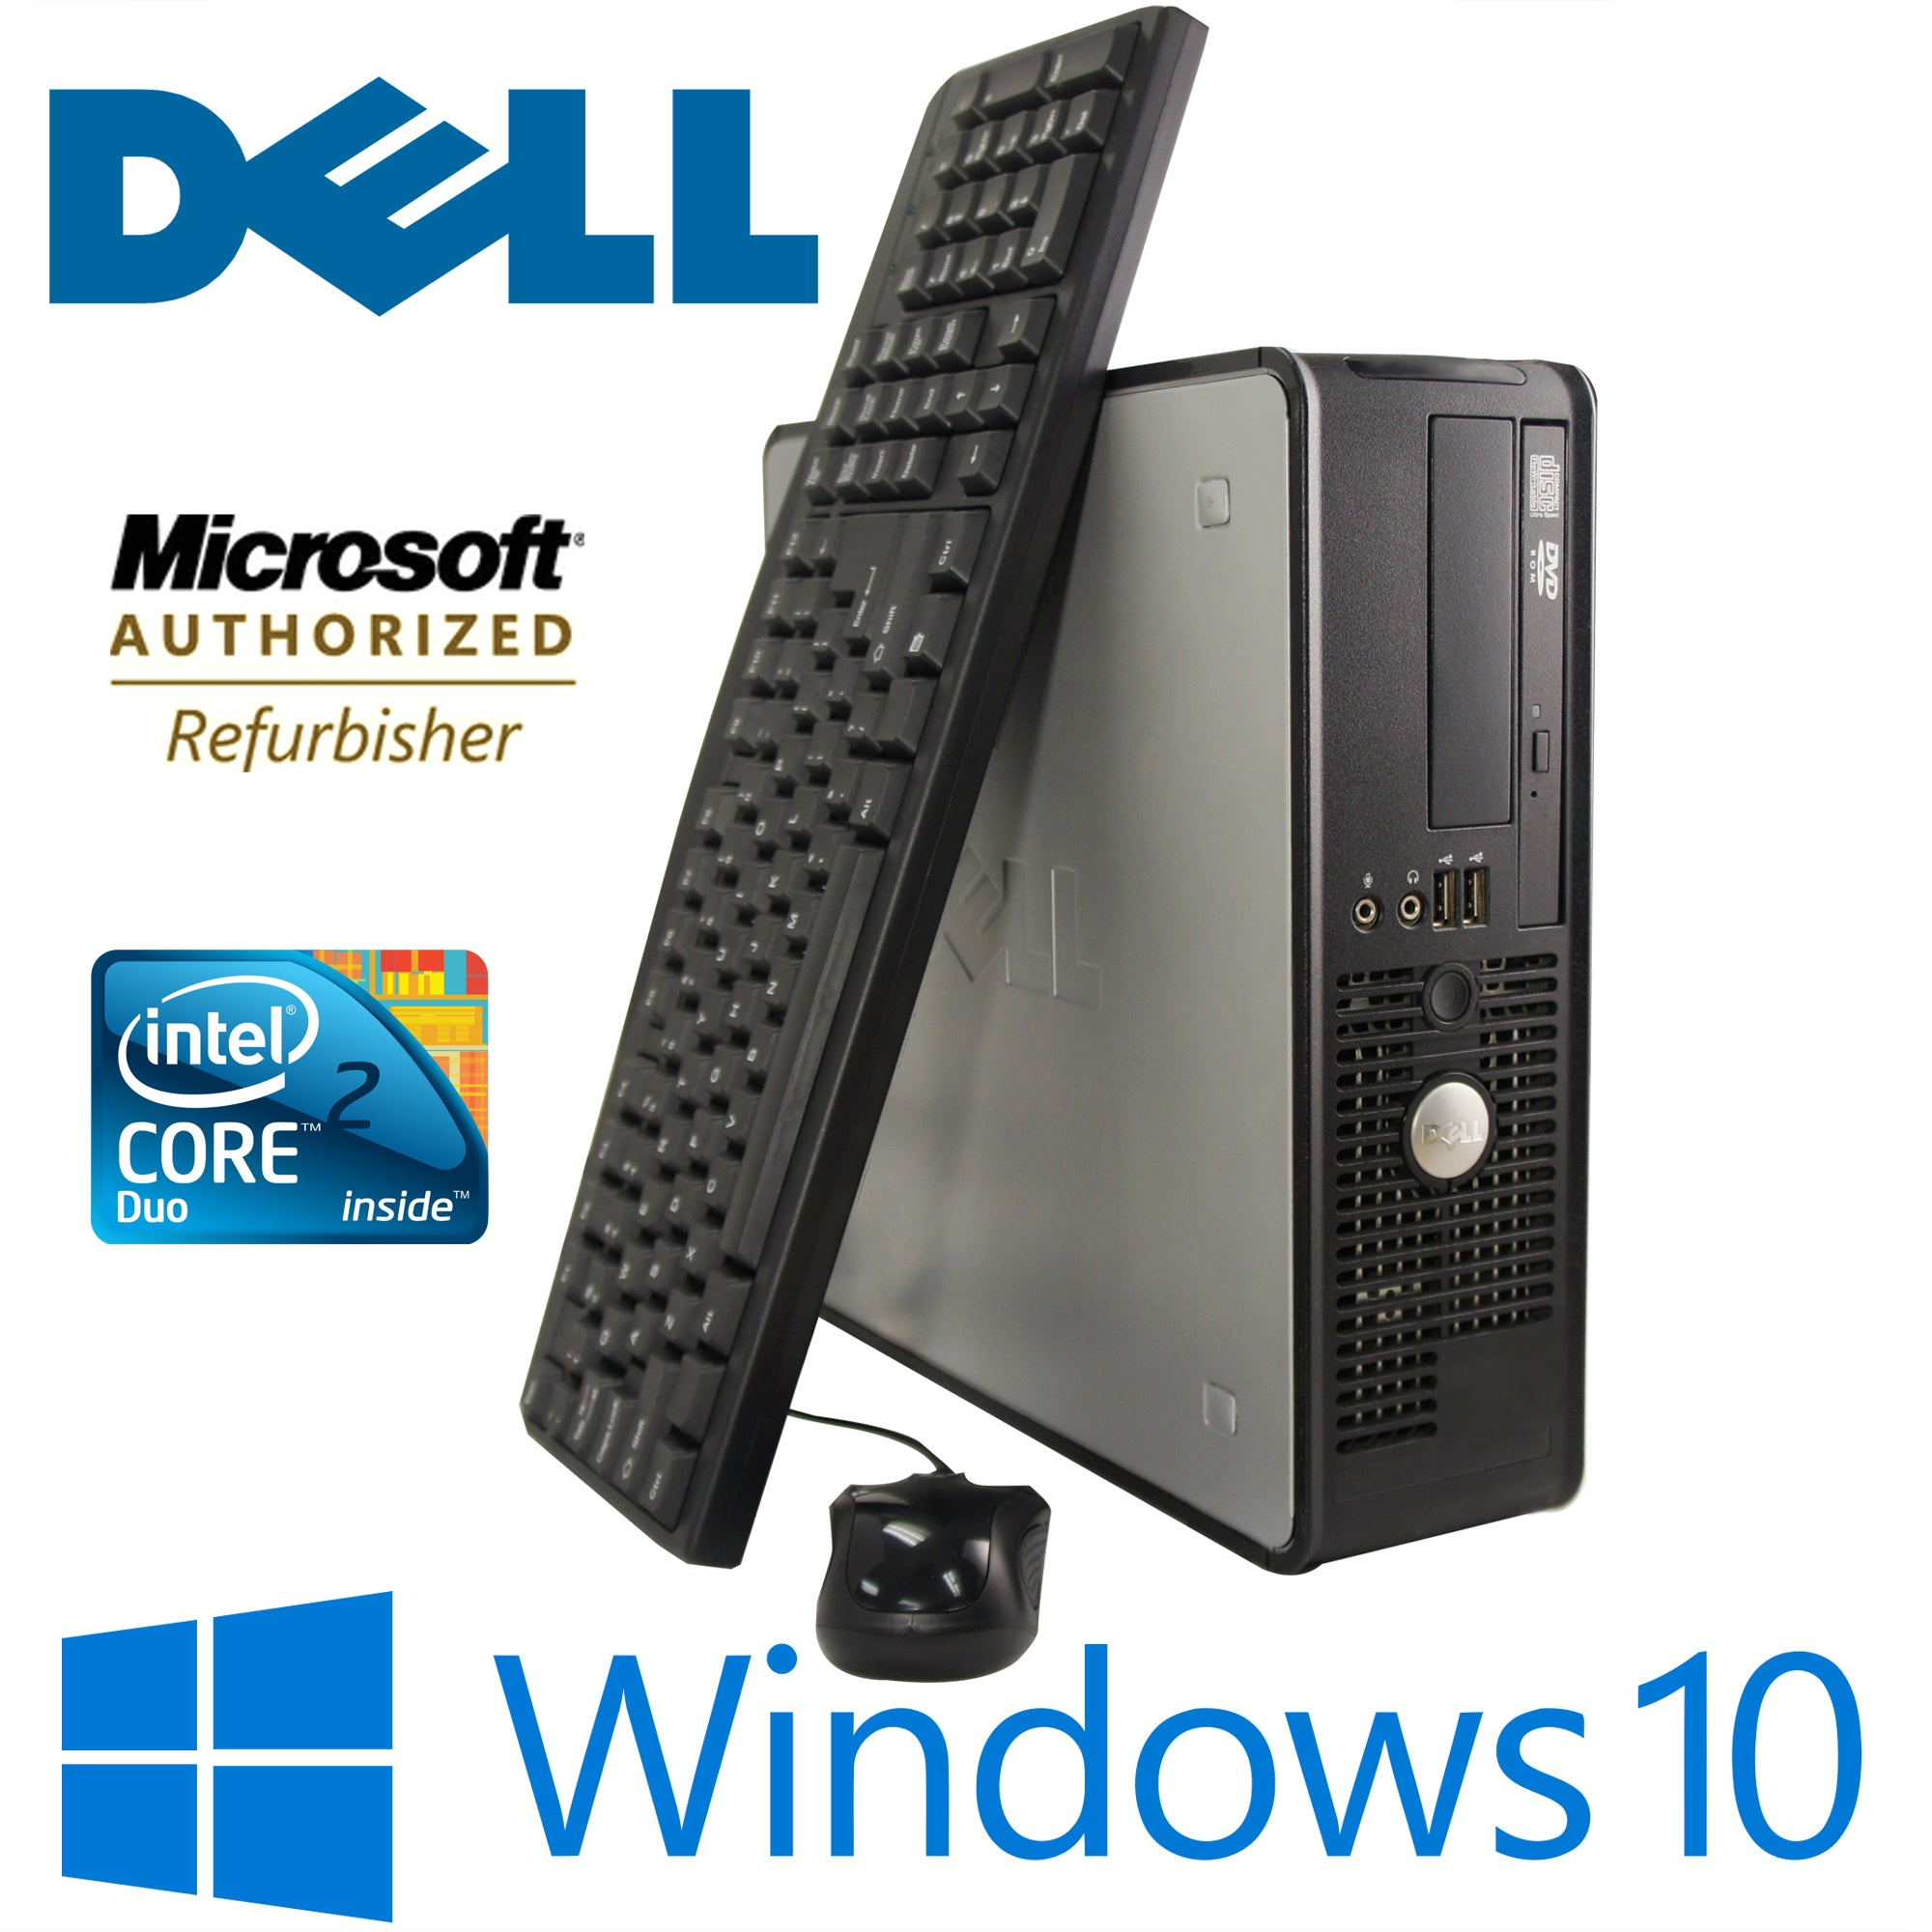 Refurbished Dell Optiplex 745 Desktop Computer by RefurbishedPC